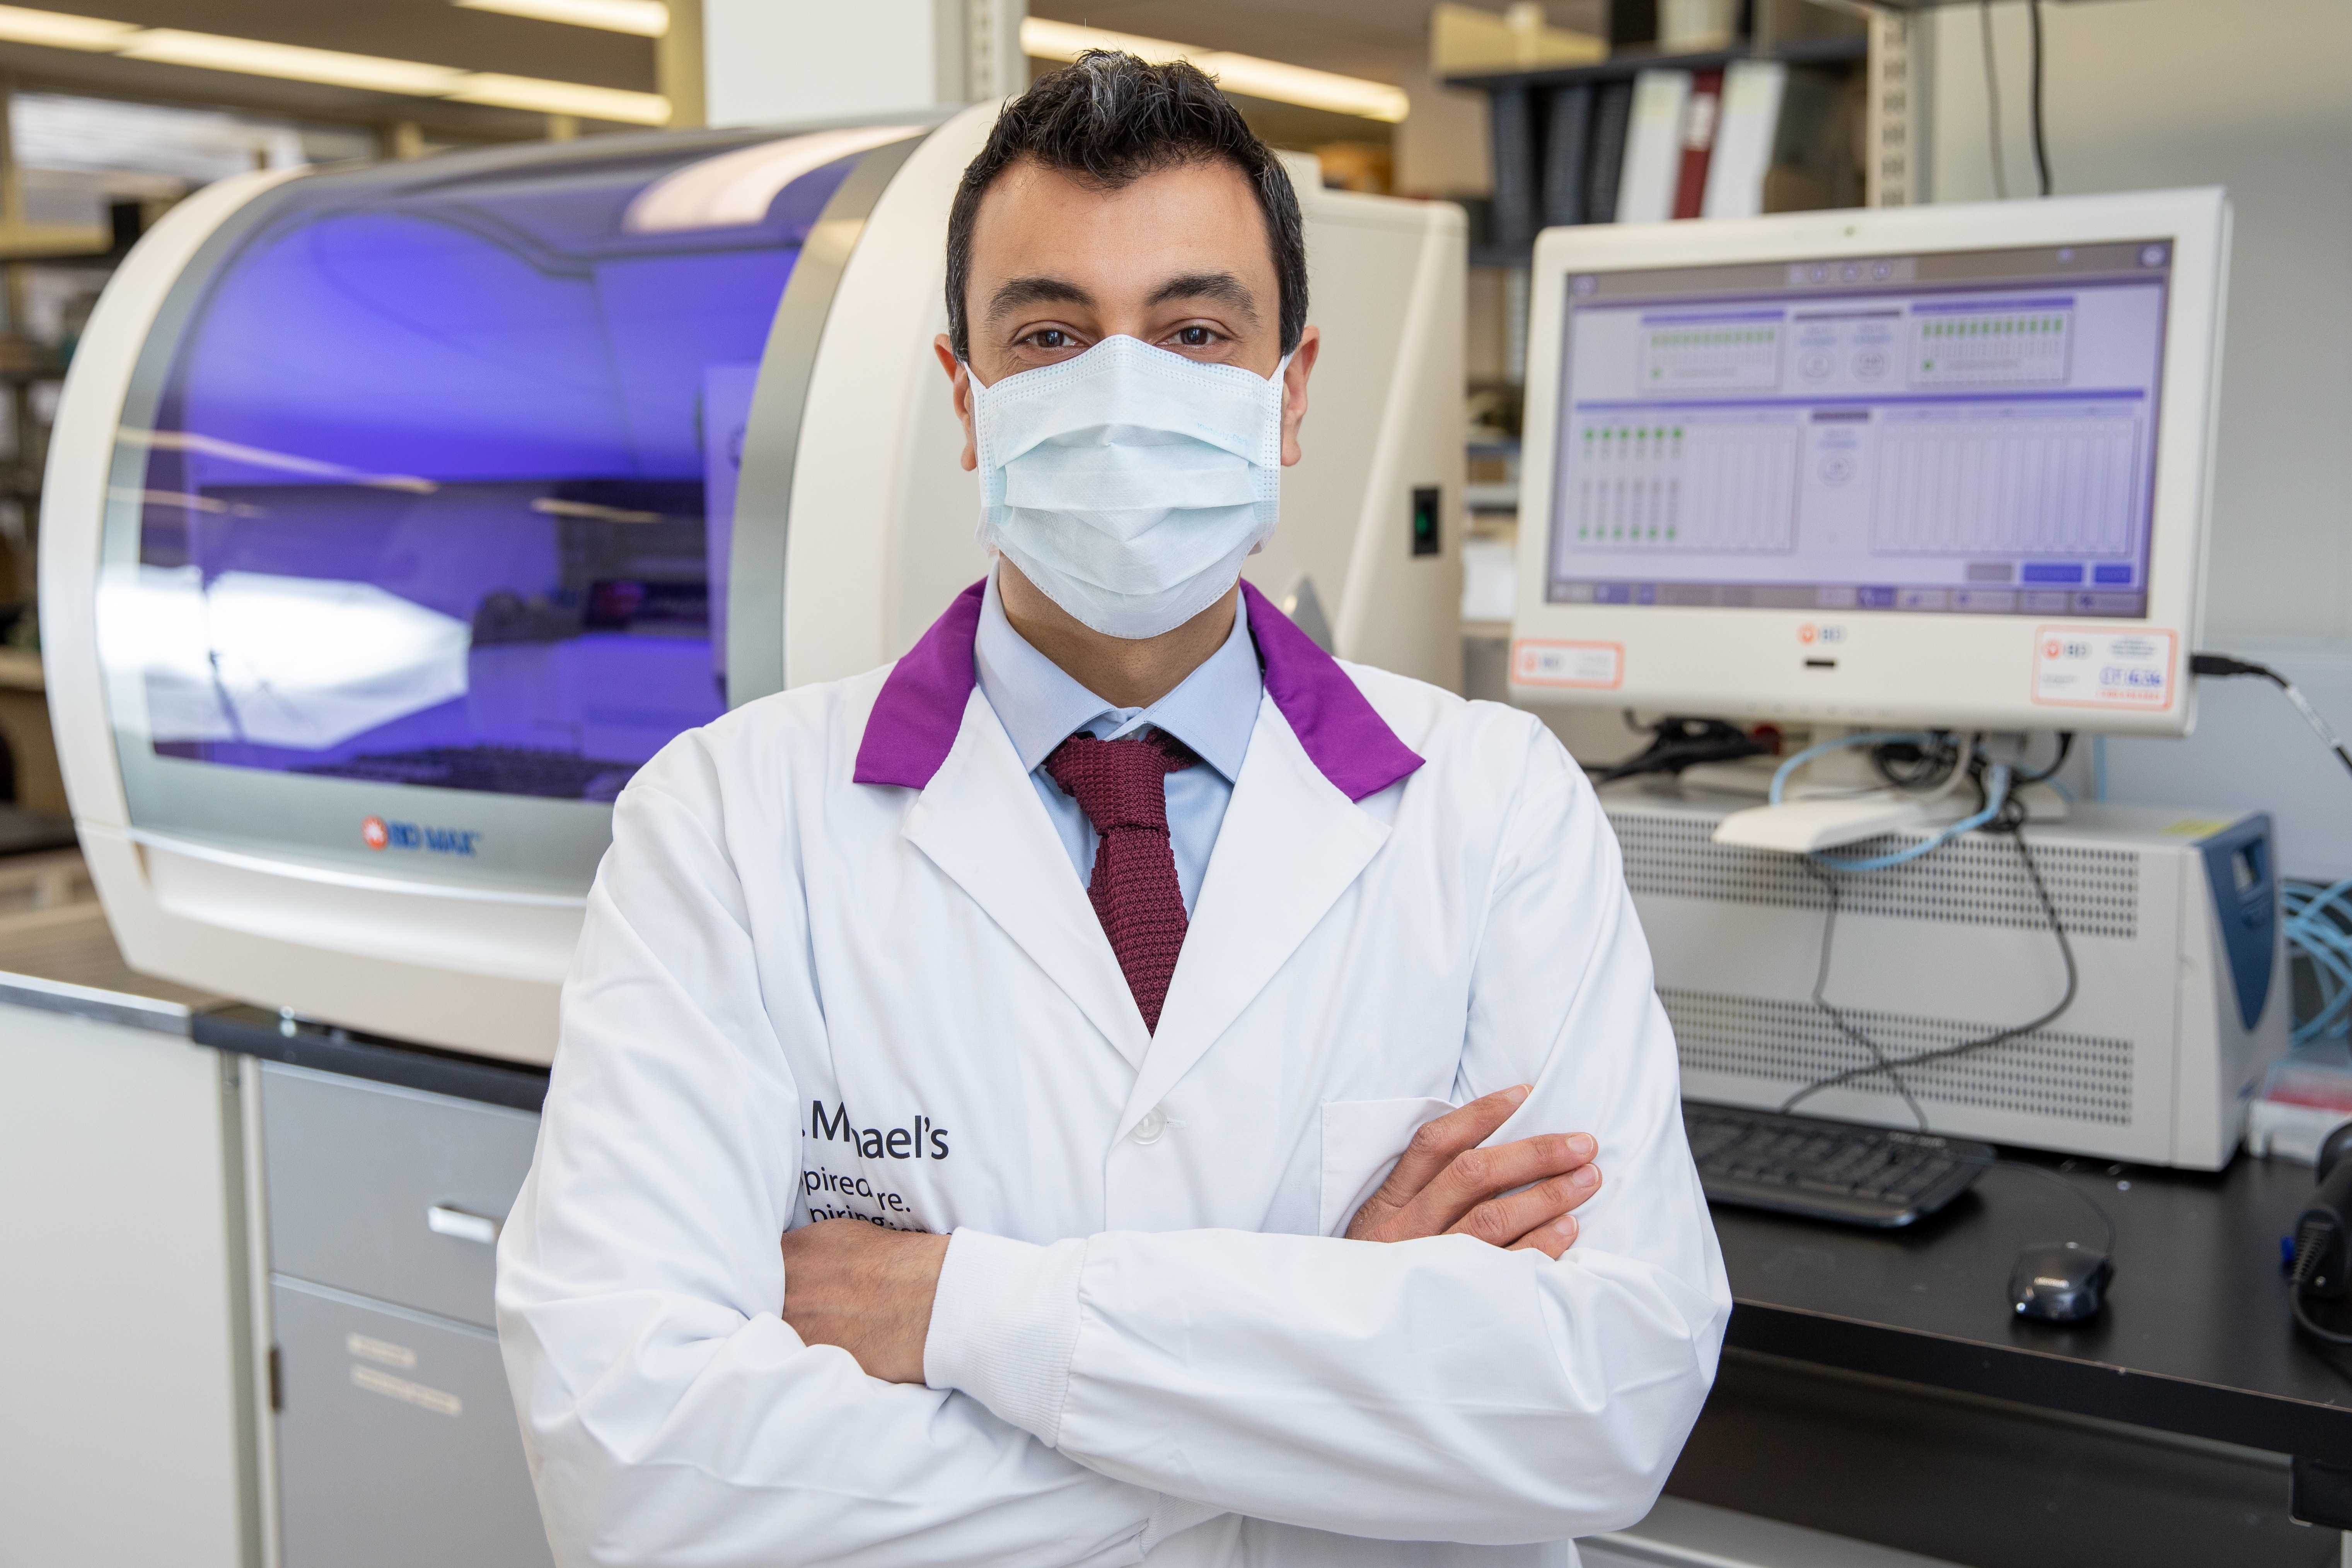 Doctor standing in front of medical machinery